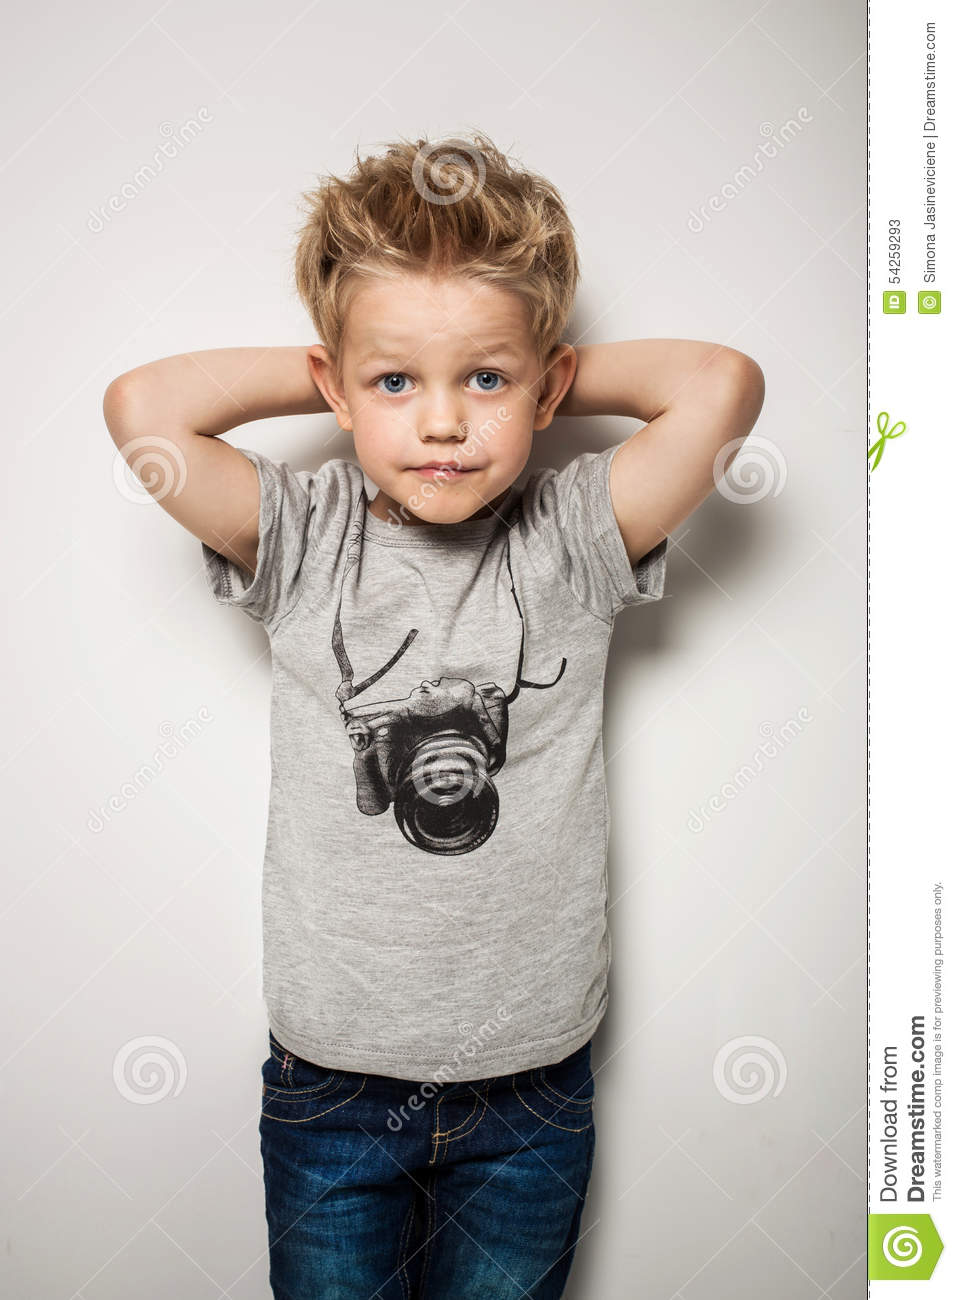 little pretty boy posing at studio as a fashion model stock image image of emotion haircut. Black Bedroom Furniture Sets. Home Design Ideas